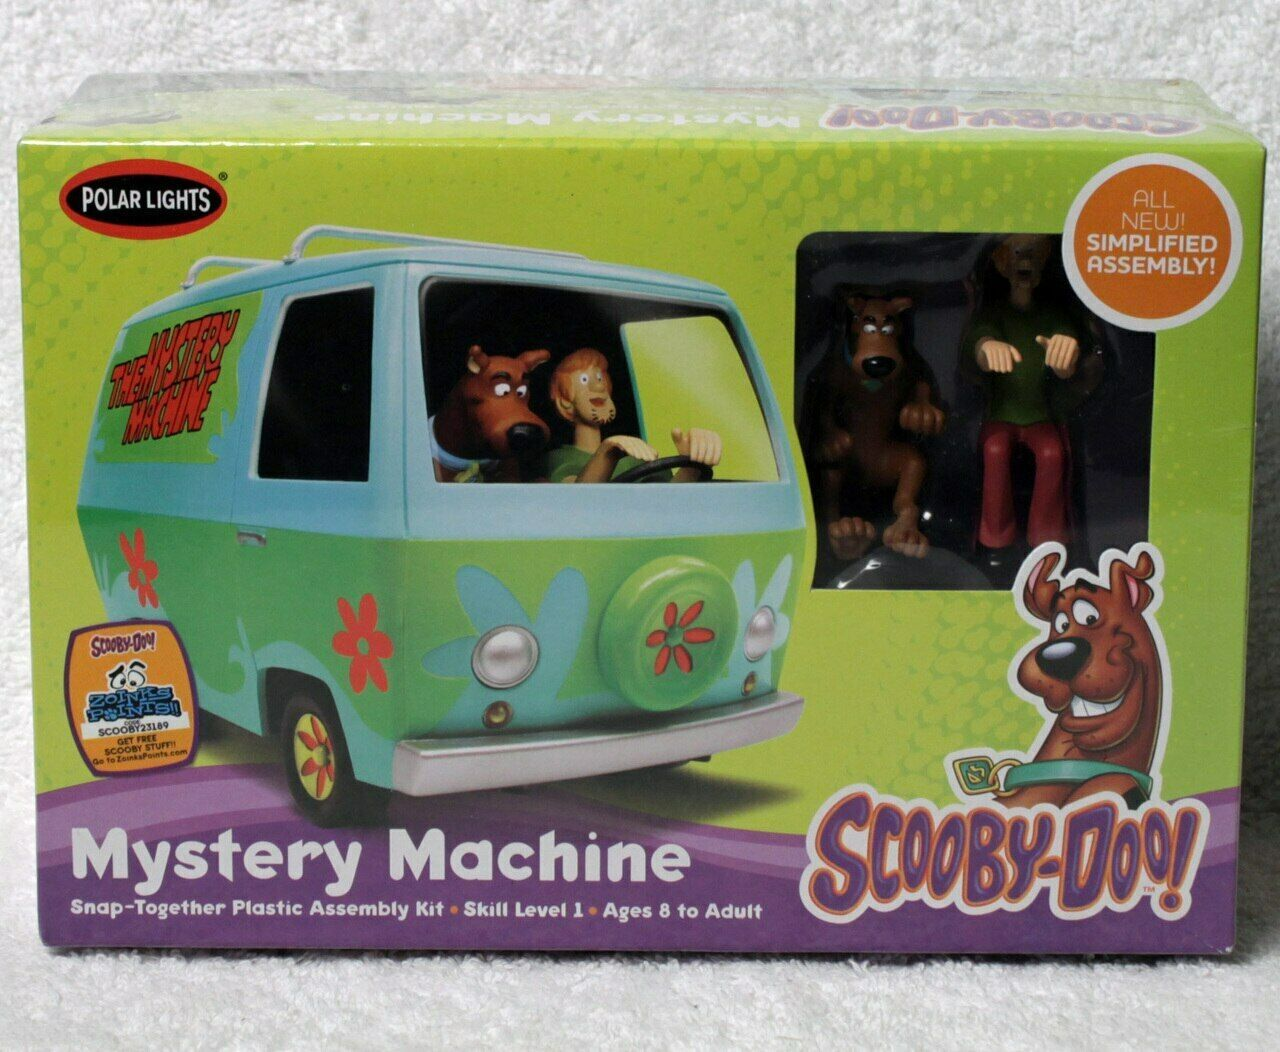 Scooby-Doo Mystery Machine 1:25 Snap-It Plastic Model Kit Polar Lights POL911 - $29.70